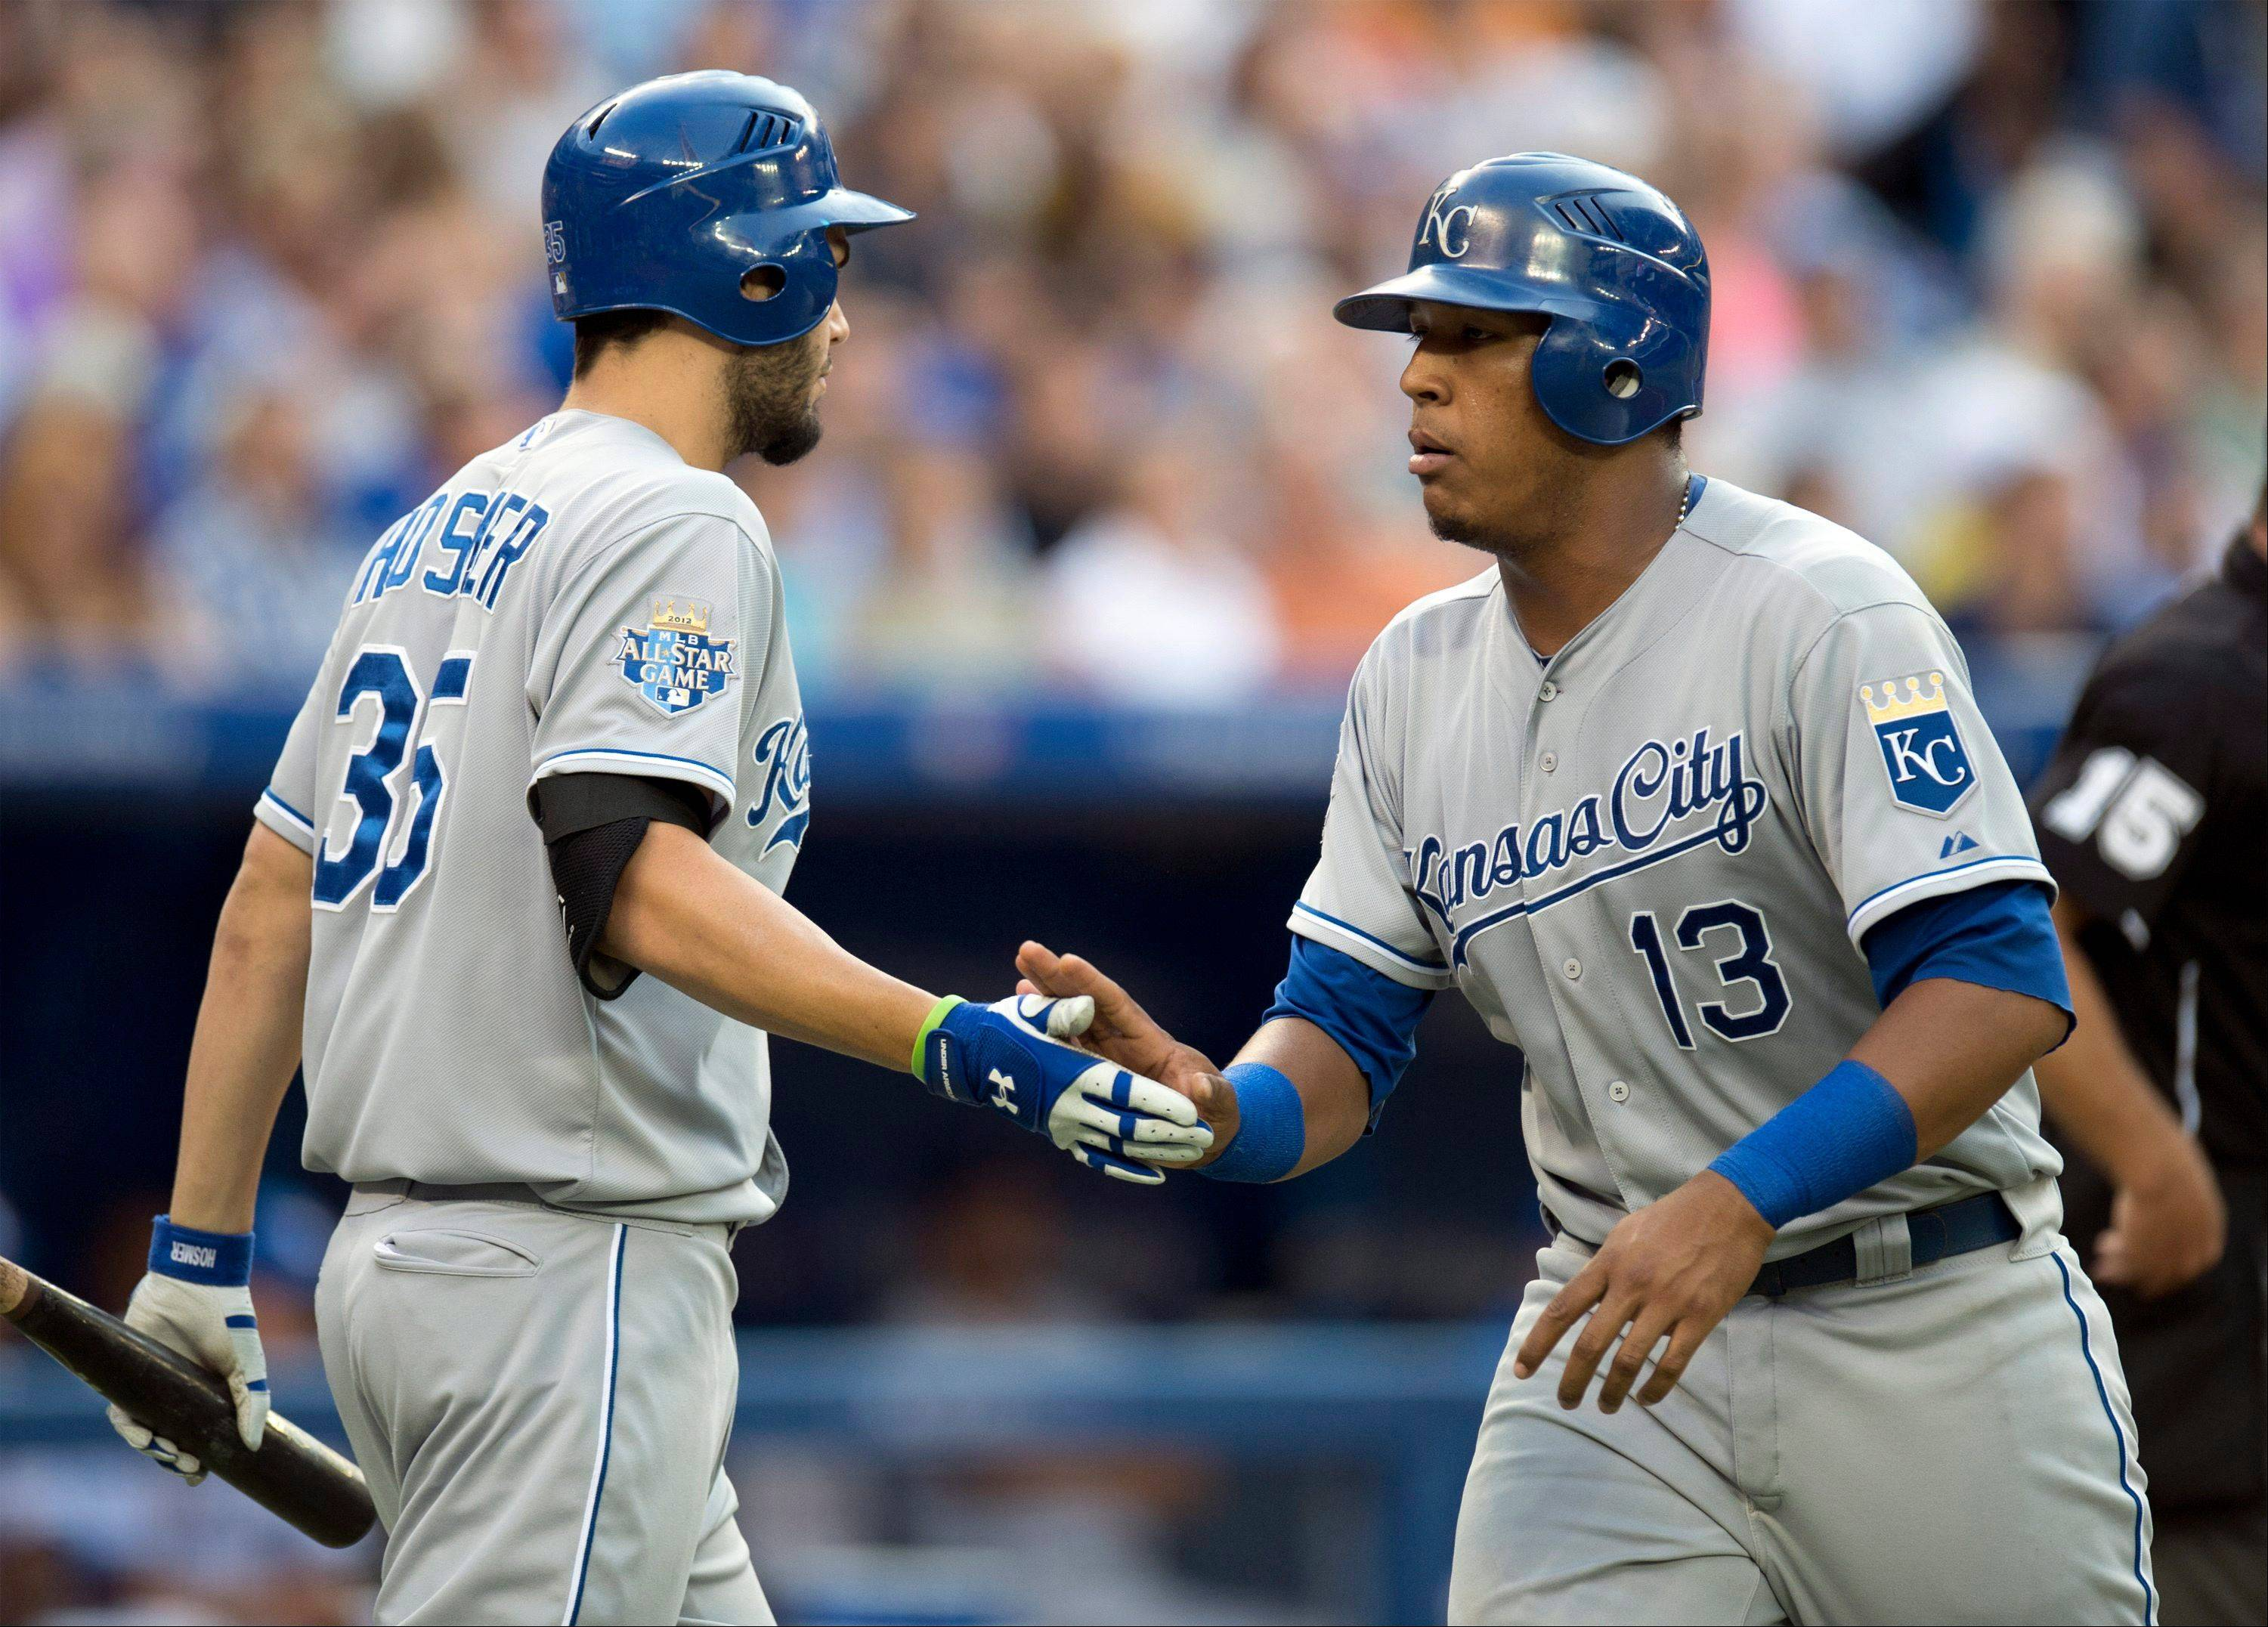 The Kansas City Royals Salvador Perez (right) is congratulated by teammate Eric Hosmer Thursday after scoring during the third inning against the Toronto Bluejays in Toronto.